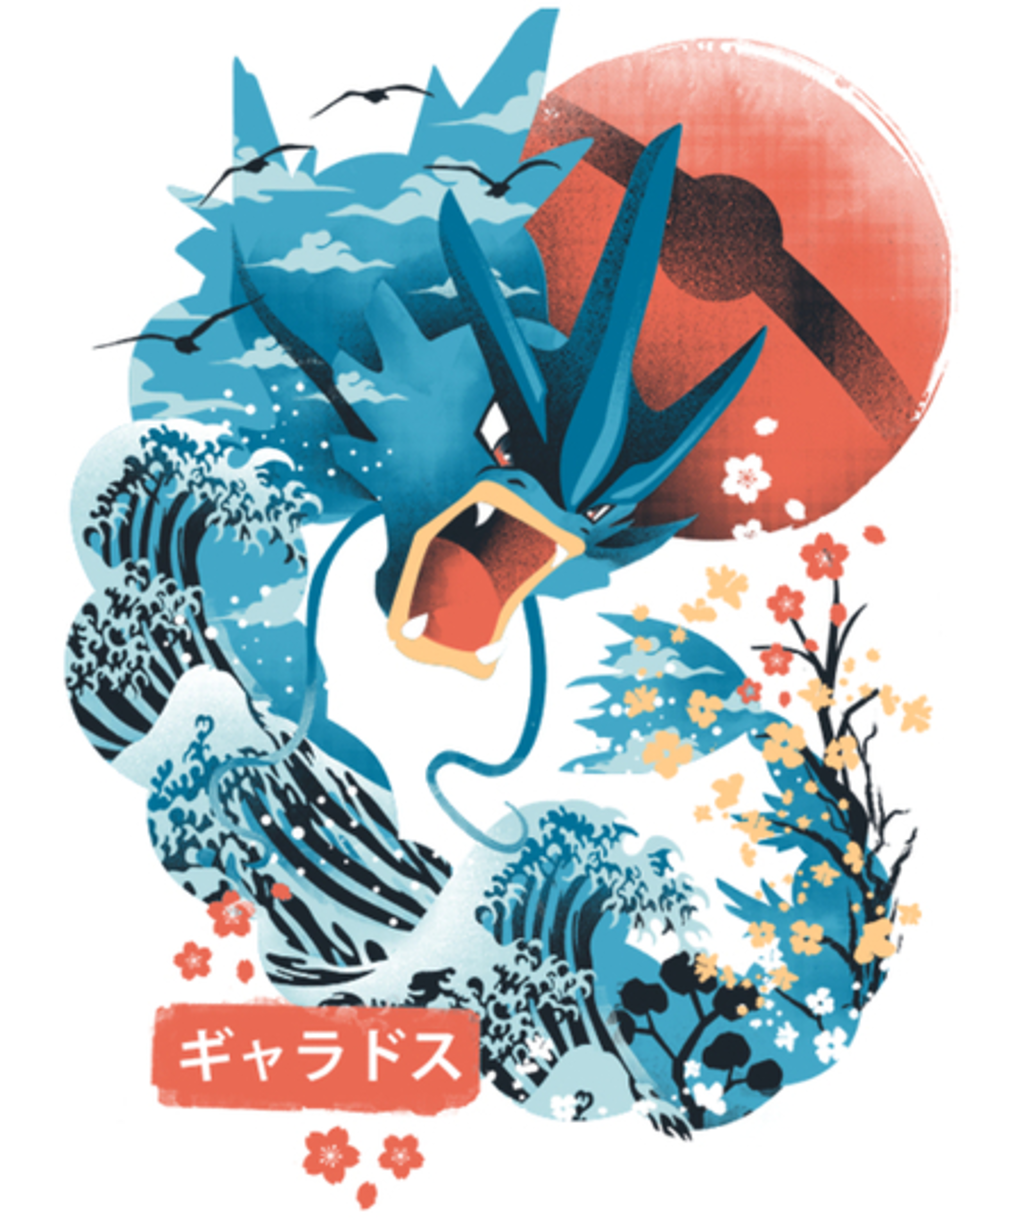 Qwertee: The Great Flying Wave